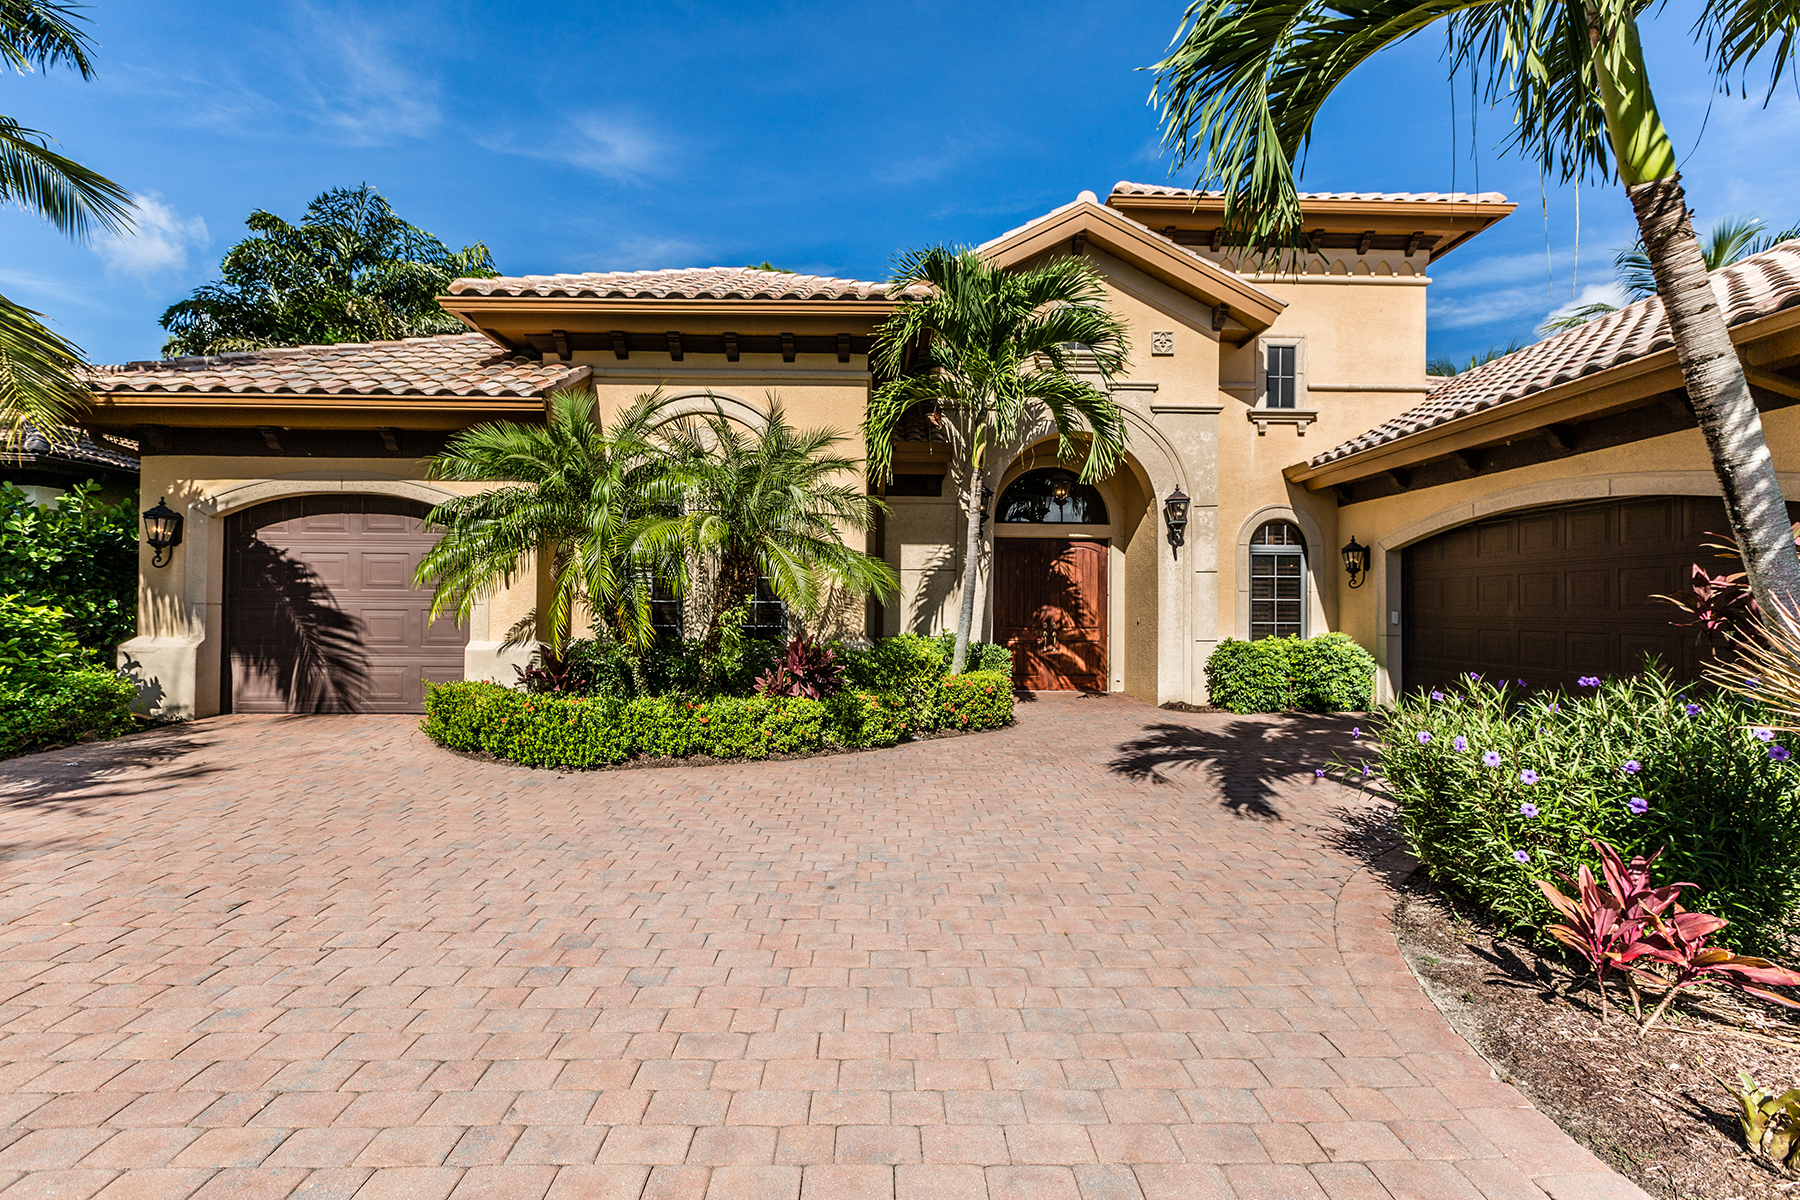 Single Family Home for Sale at LELY RESORT - MAJORS 9058 Shenendoah Cir, Naples, Florida 34113 United States